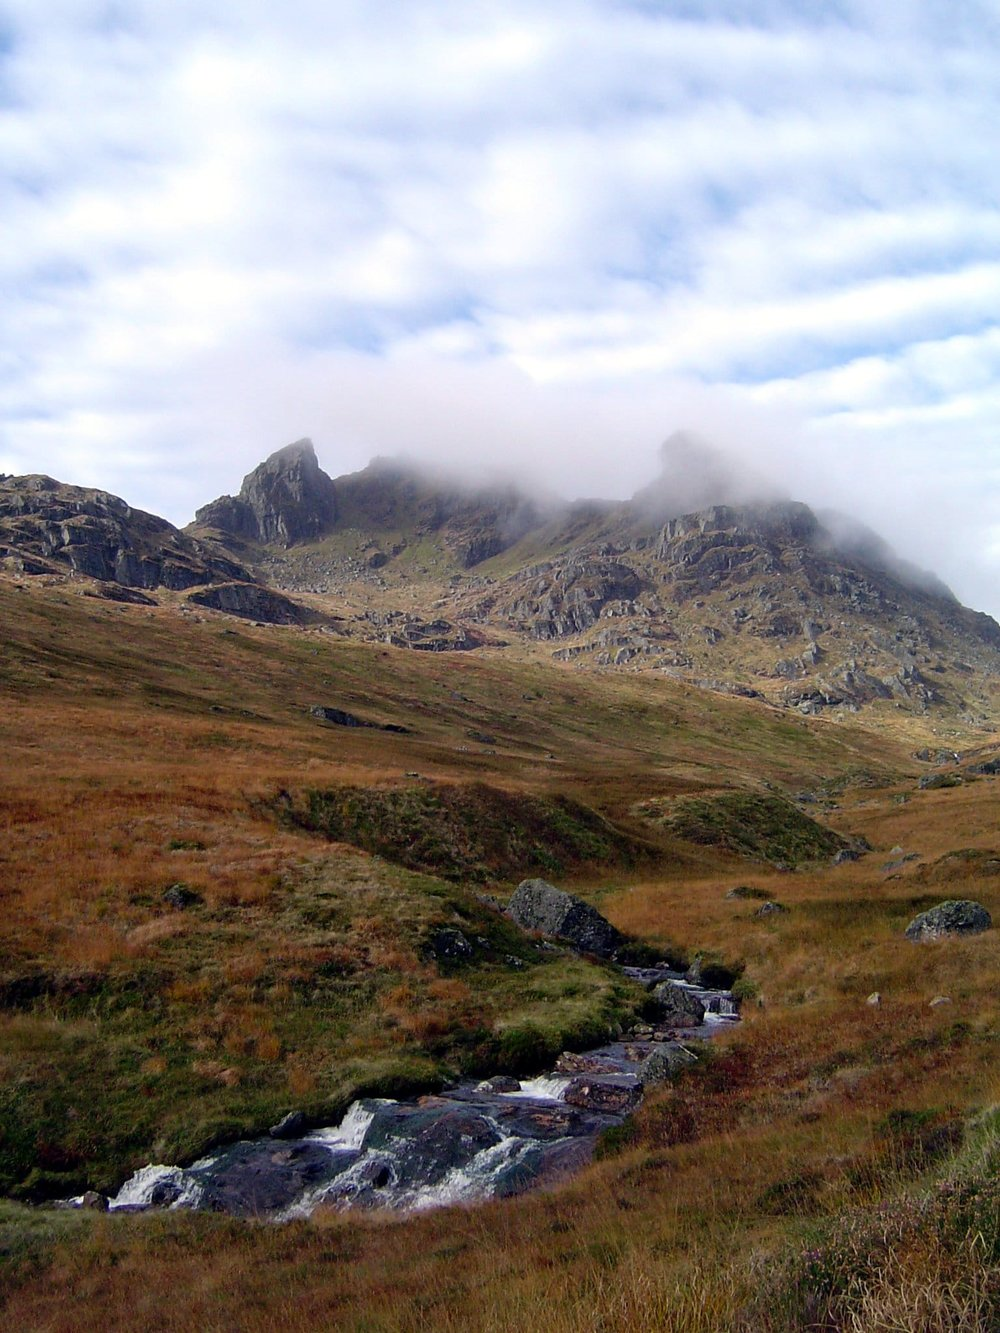 """""""The Cobbler / Ben Arthur"""" by Dr. Nils Wiese, licensed CC BY-NC 2.0."""